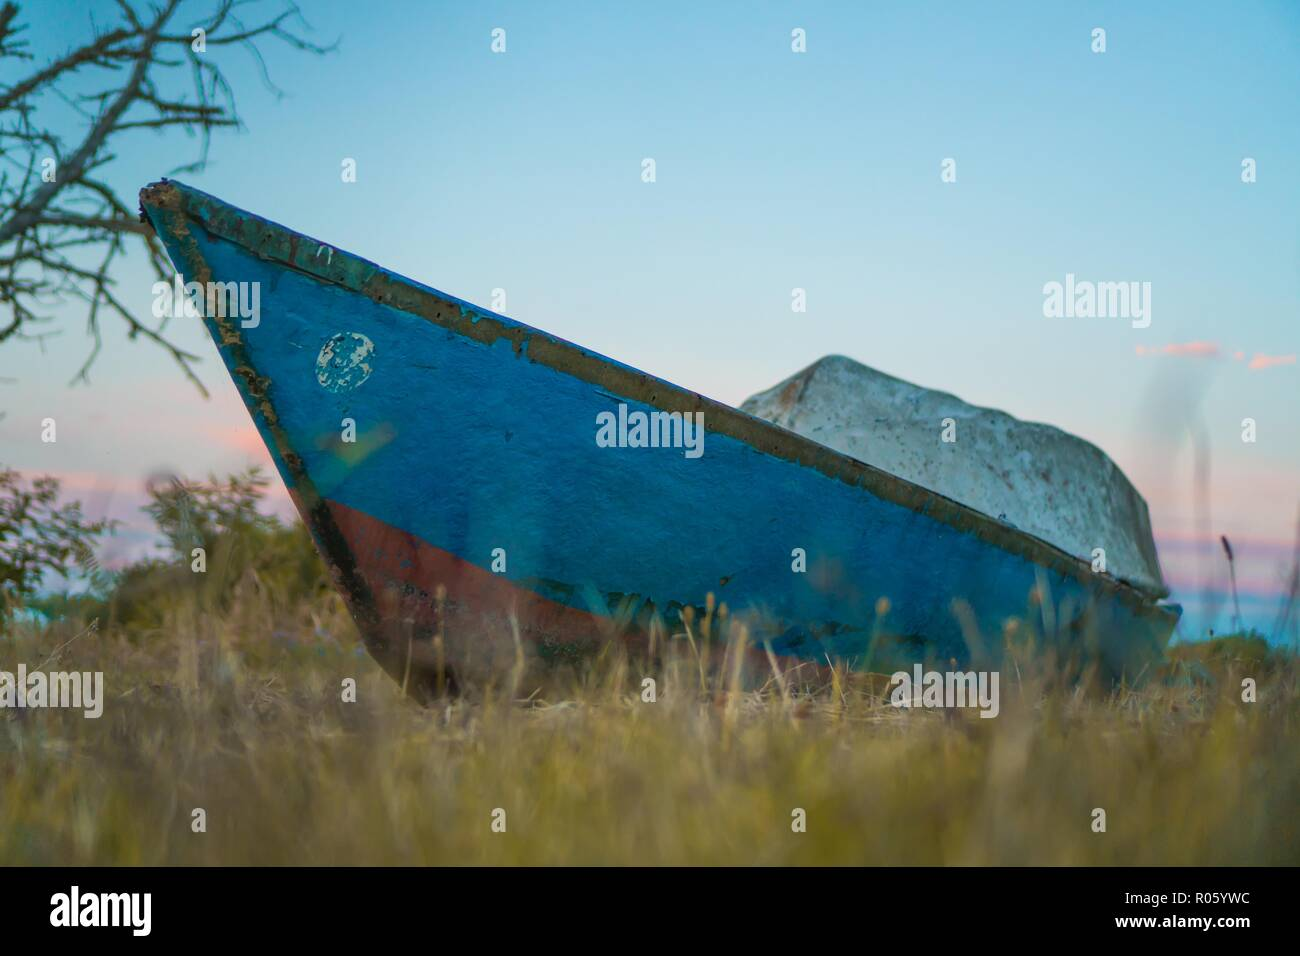 A small antique wooden boat resting on the yellow grass - Stock Image